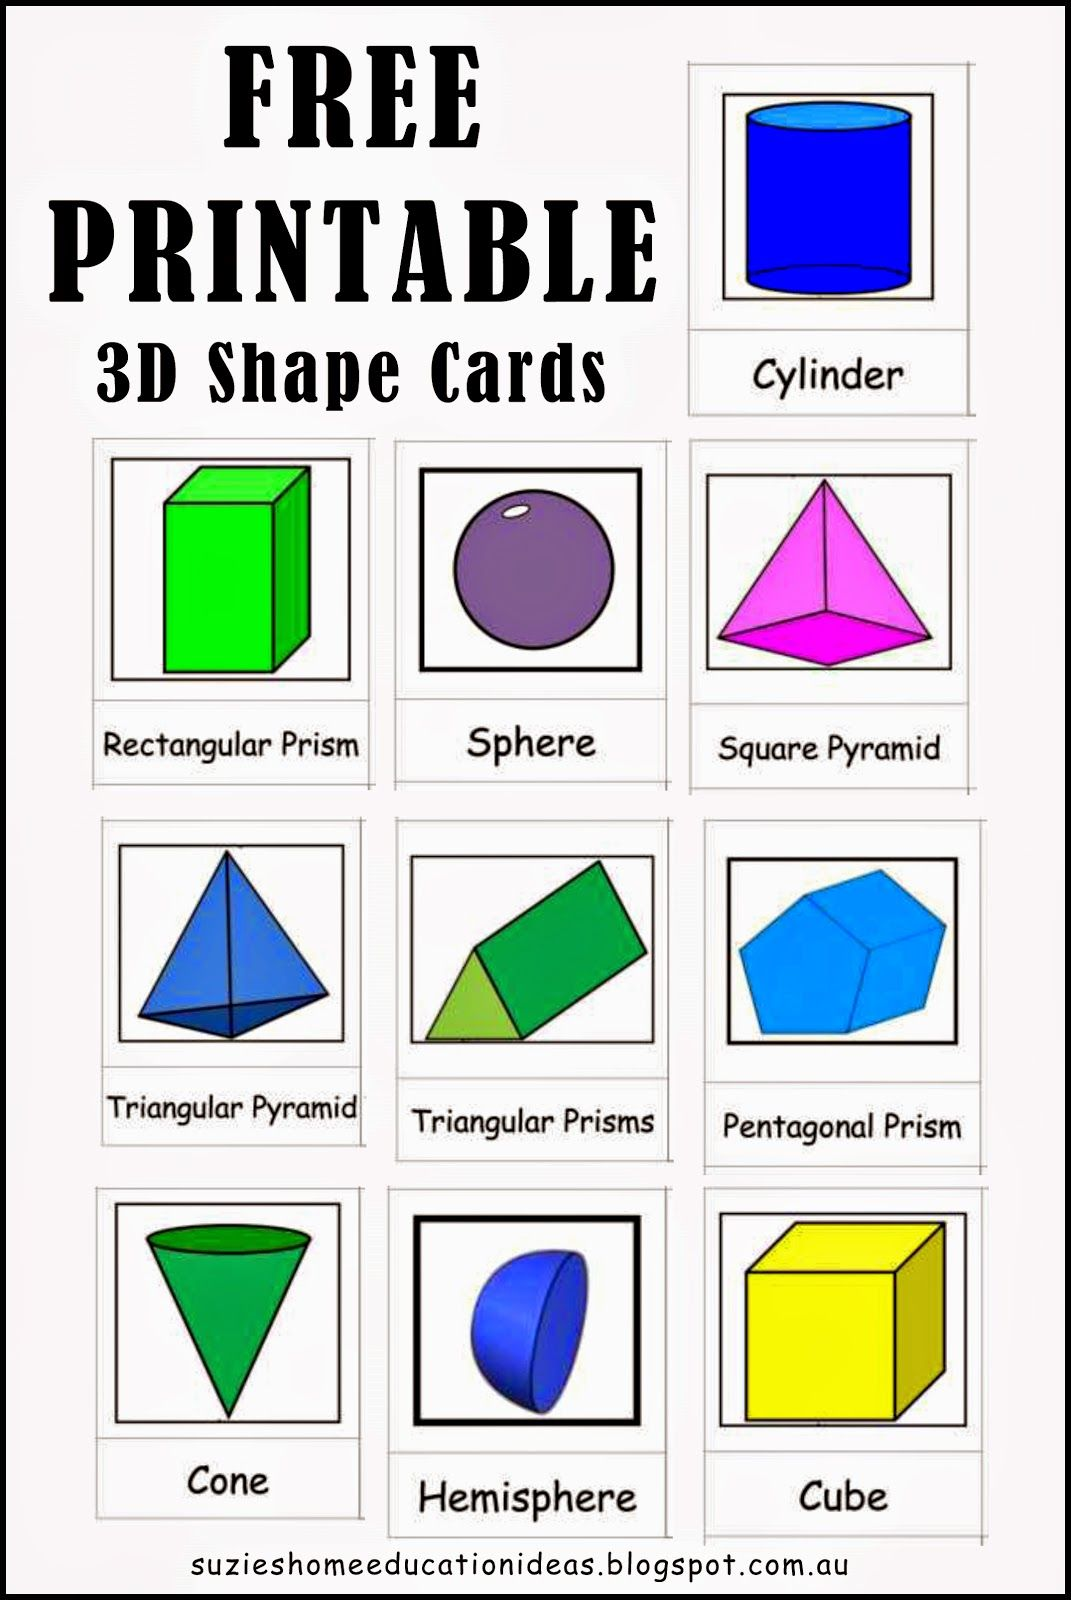 Worksheet Names Shapes 10 ideas about shape names on pinterest 3d shapes kindergarten and activities